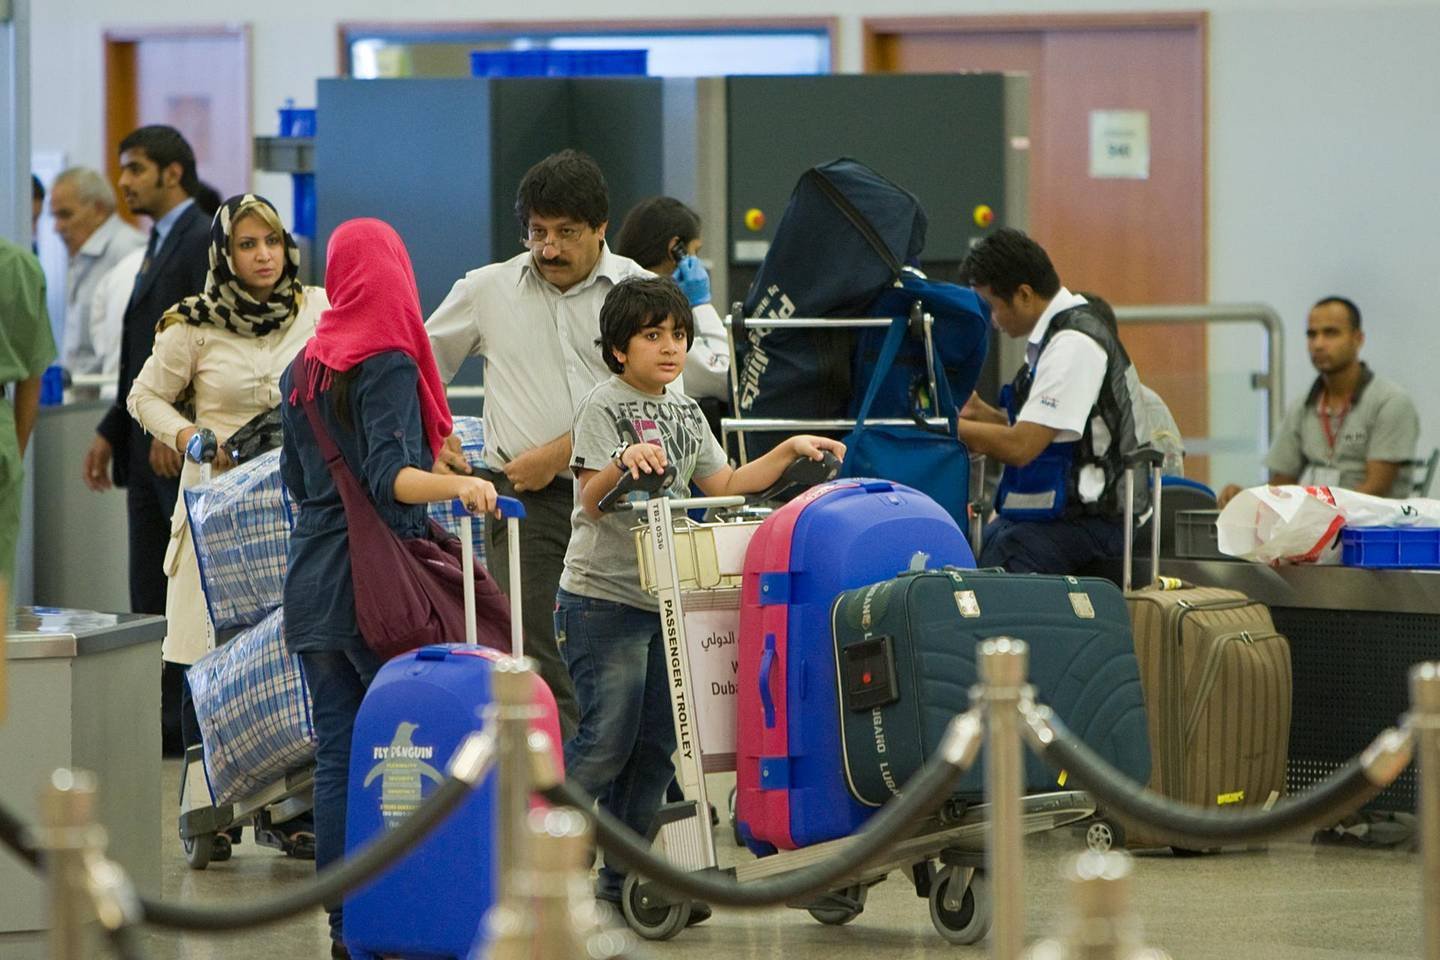 United Arab Emirates - Dubai - August 2, 2010.BUSINESS: Travelers go through a security check point at Dubai International Airport Terminal 2 in Dubai on Monday, August 2, 2010. Amy Leang/The National